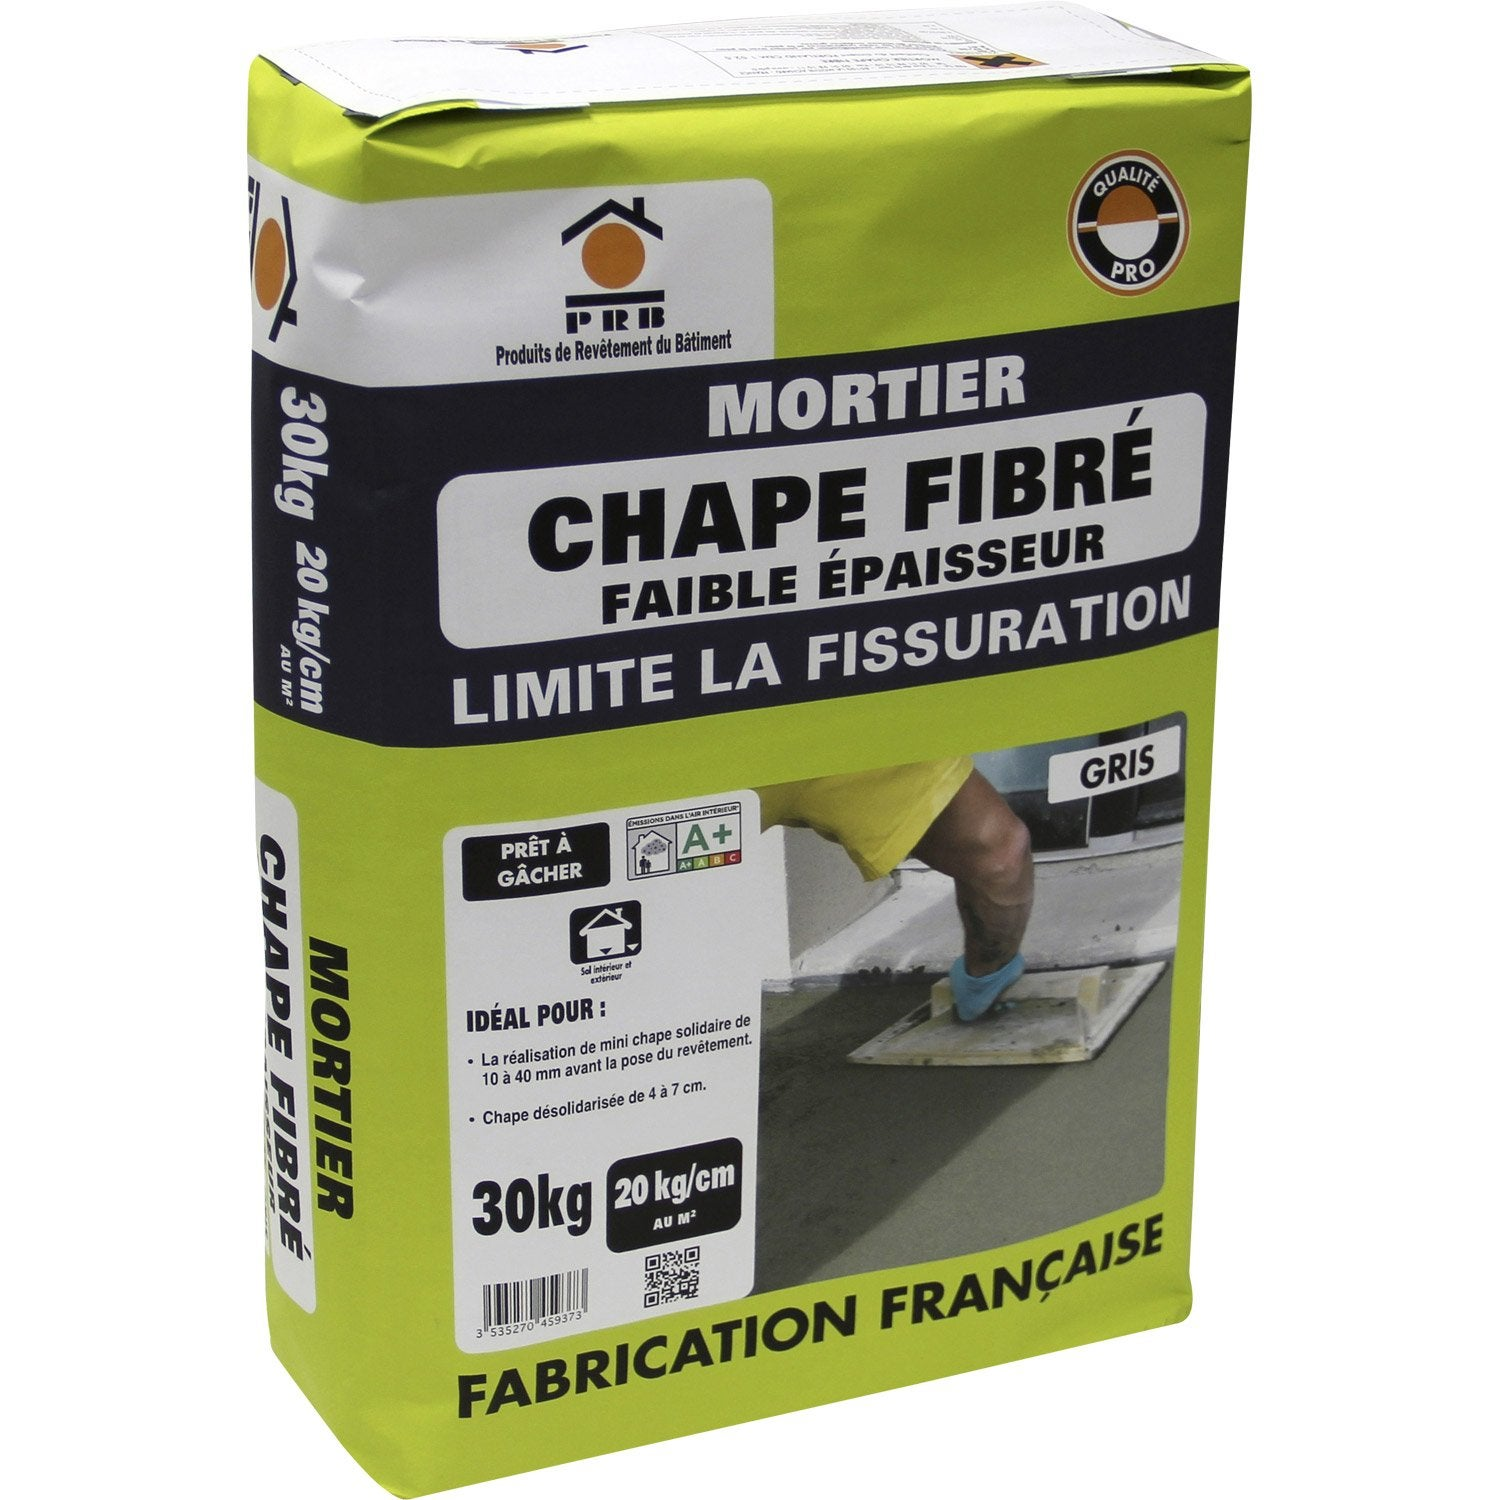 Mortier pour chape fibr gris prb 30kg leroy merlin for Dosage mortier pour chape